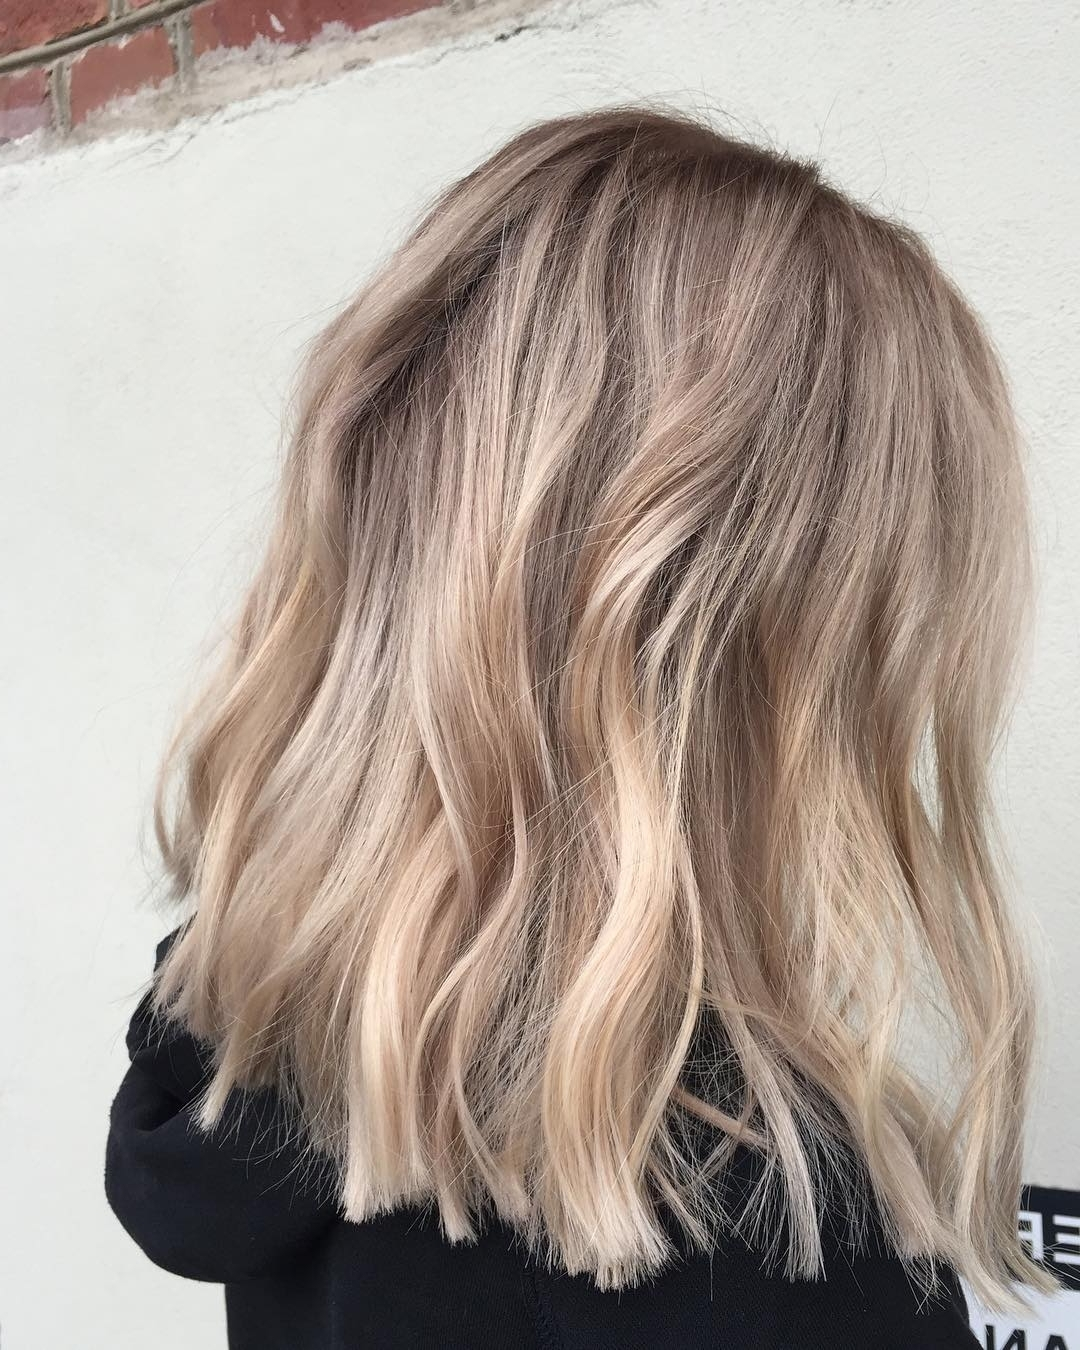 10 Lob Haircut Ideas – Edgy Cuts & Hot New Colors – Popular Haircuts Pertaining To Most Recent Dark And Light Contrasting Blonde Lob Hairstyles (View 1 of 20)